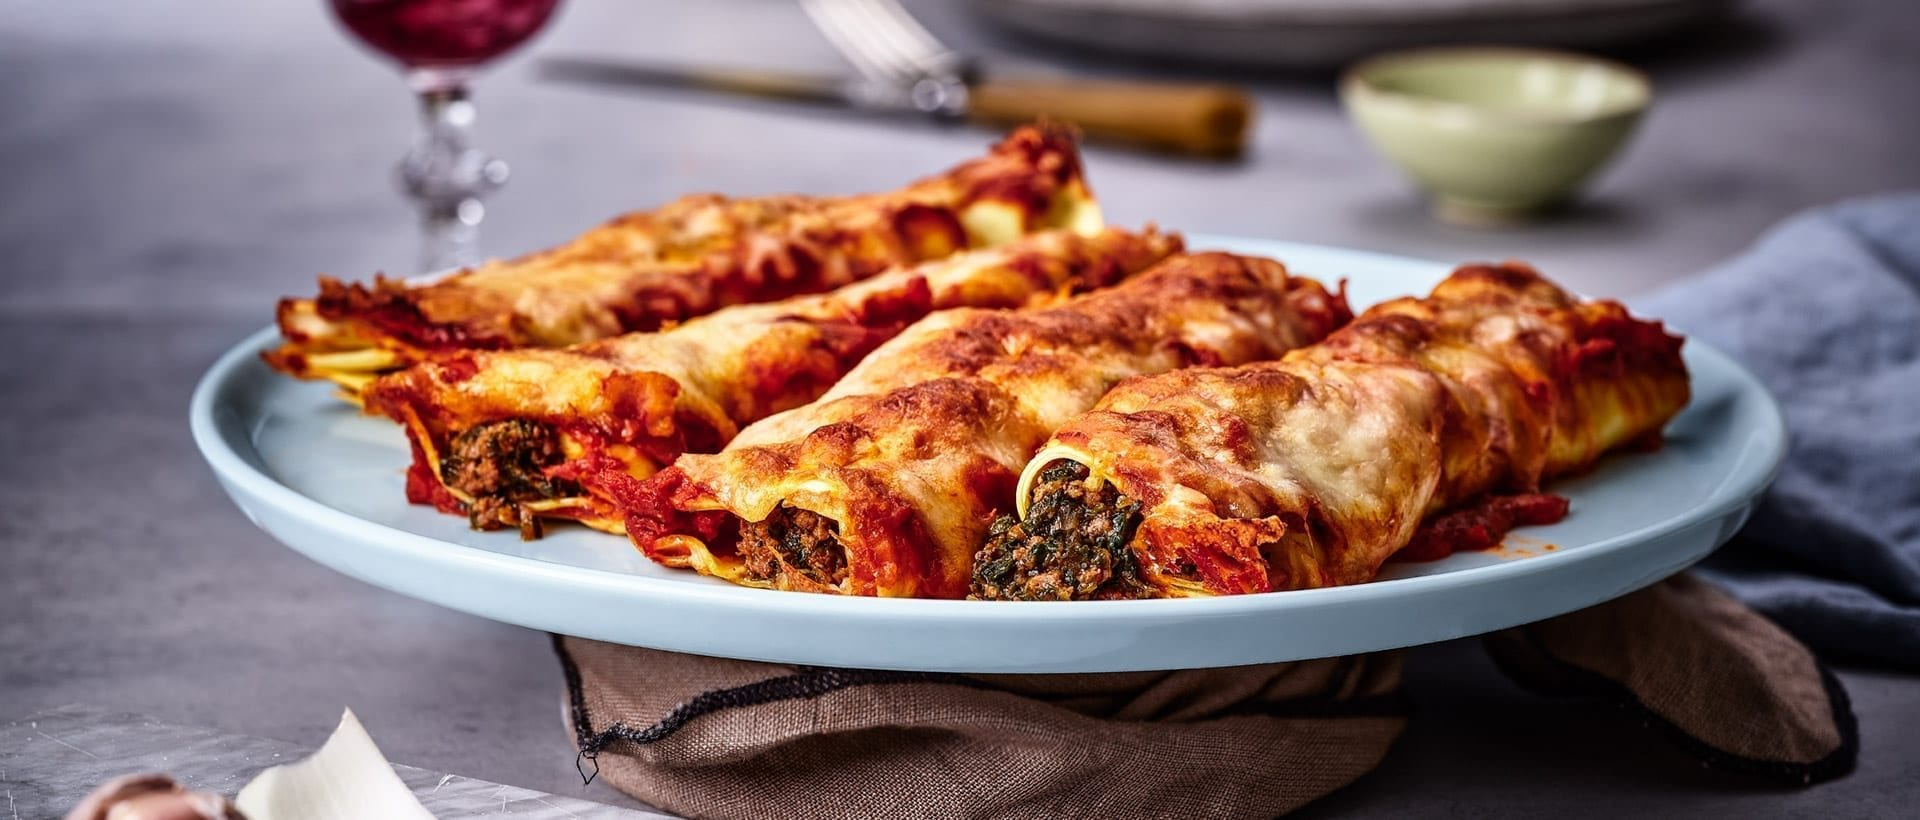 Cannelloni med moskus